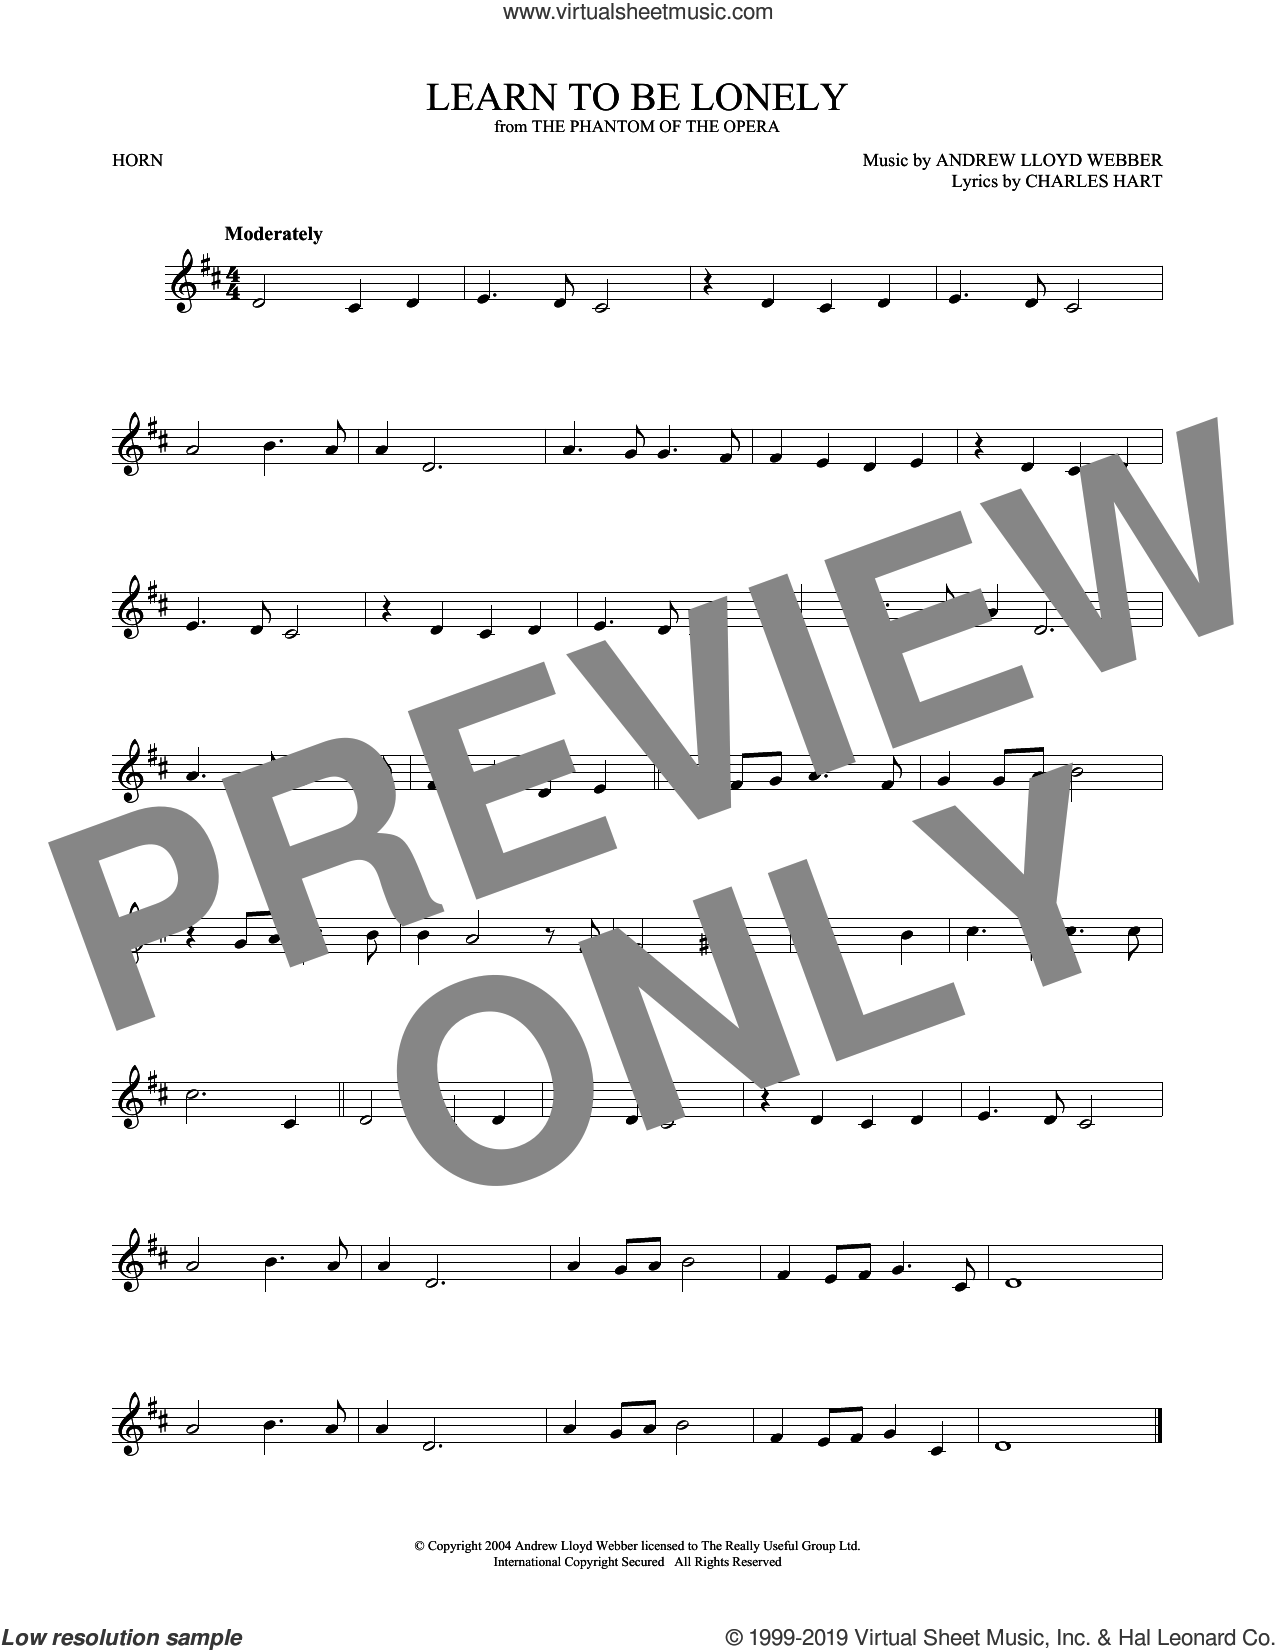 Learn To Be Lonely (from The Phantom Of The Opera) sheet music for horn solo by Andrew Lloyd Webber and Charles Hart, intermediate skill level